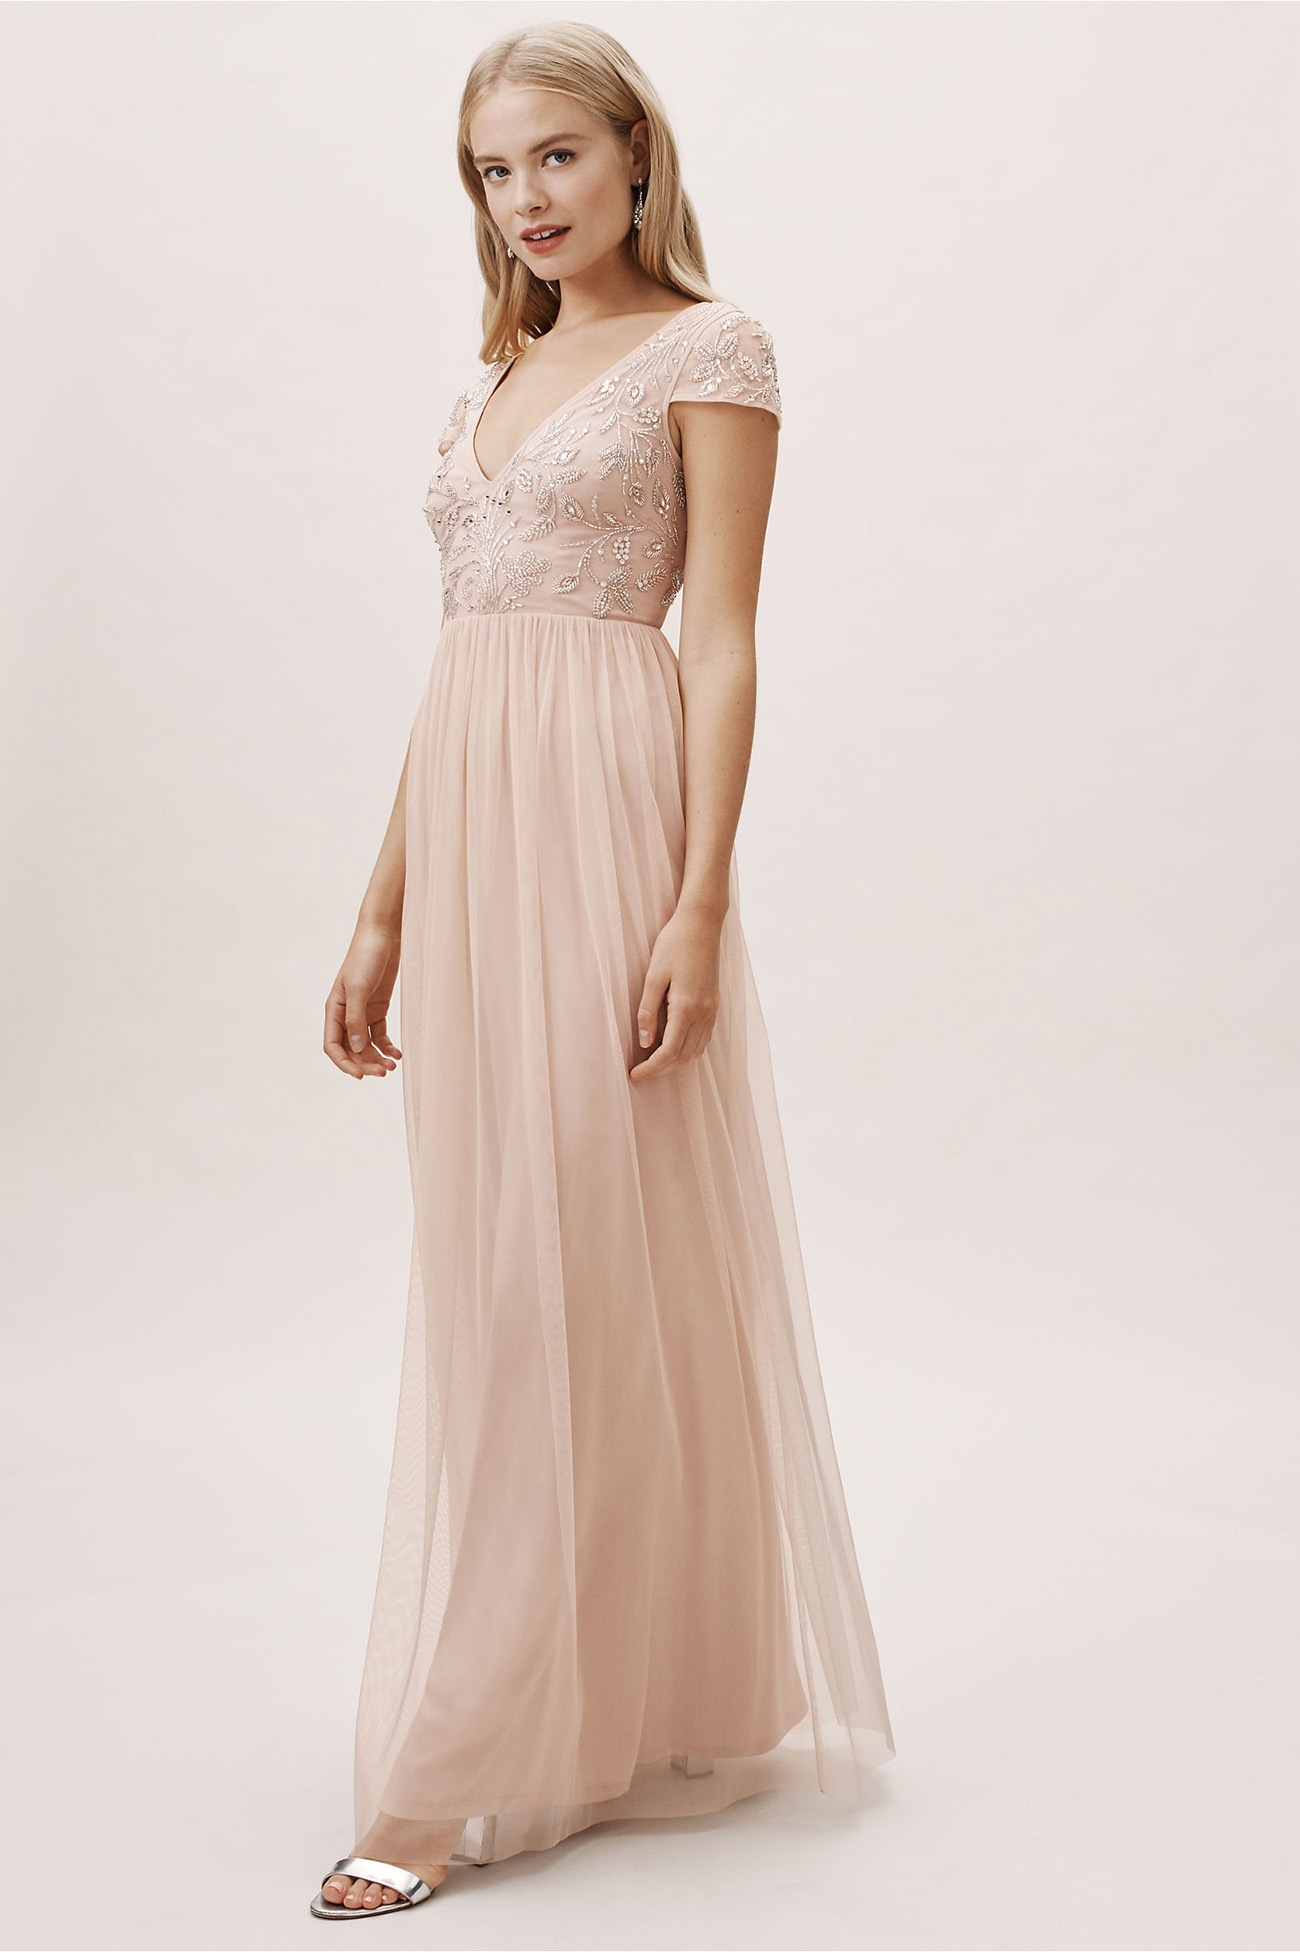 Diaz Bridesmaids Dress Blush from BHLDN